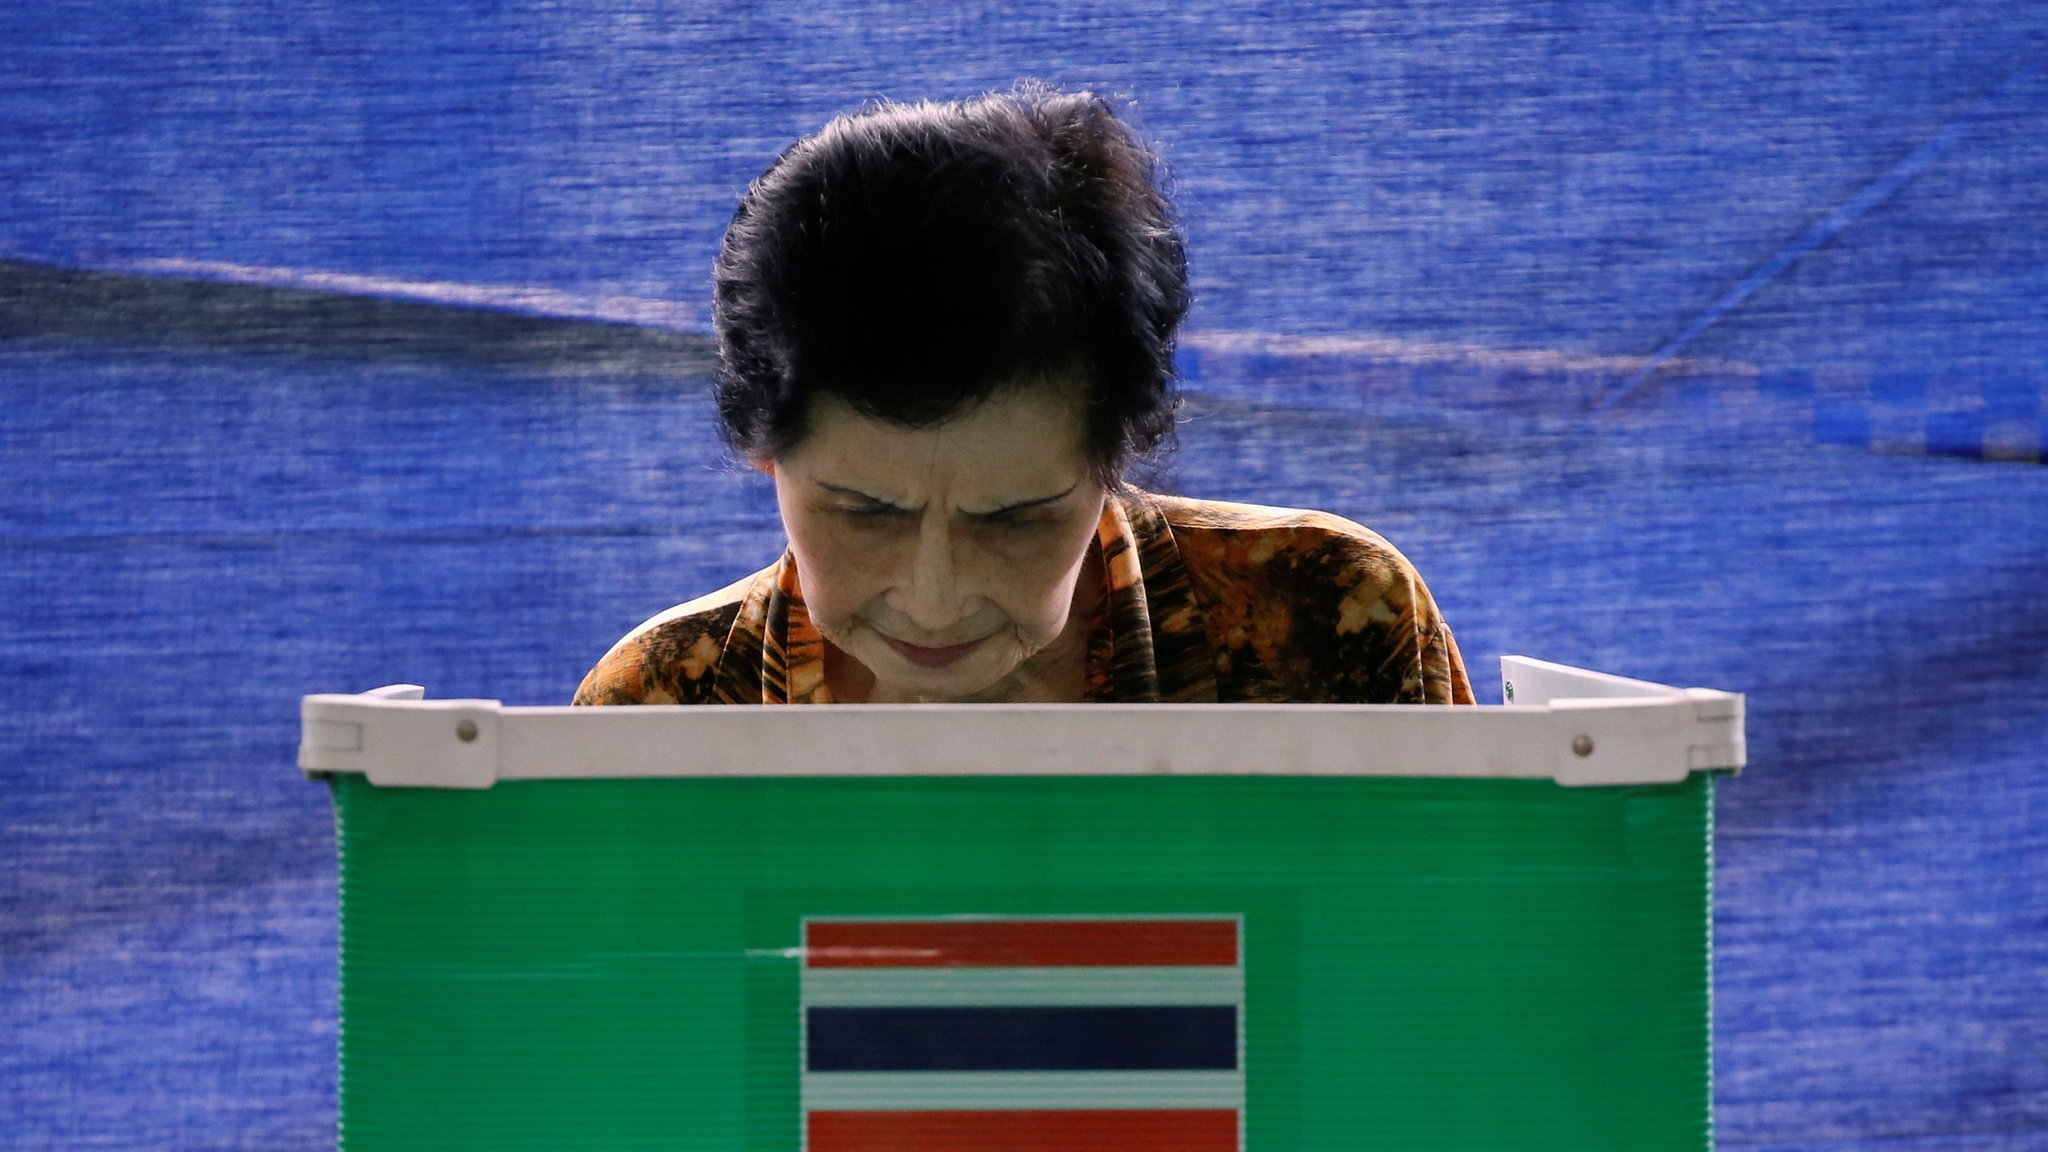 A Thai woman casts her ballot at a polling station during a constitutional referendum vote in Bangkok, Thailand August 7, 2016